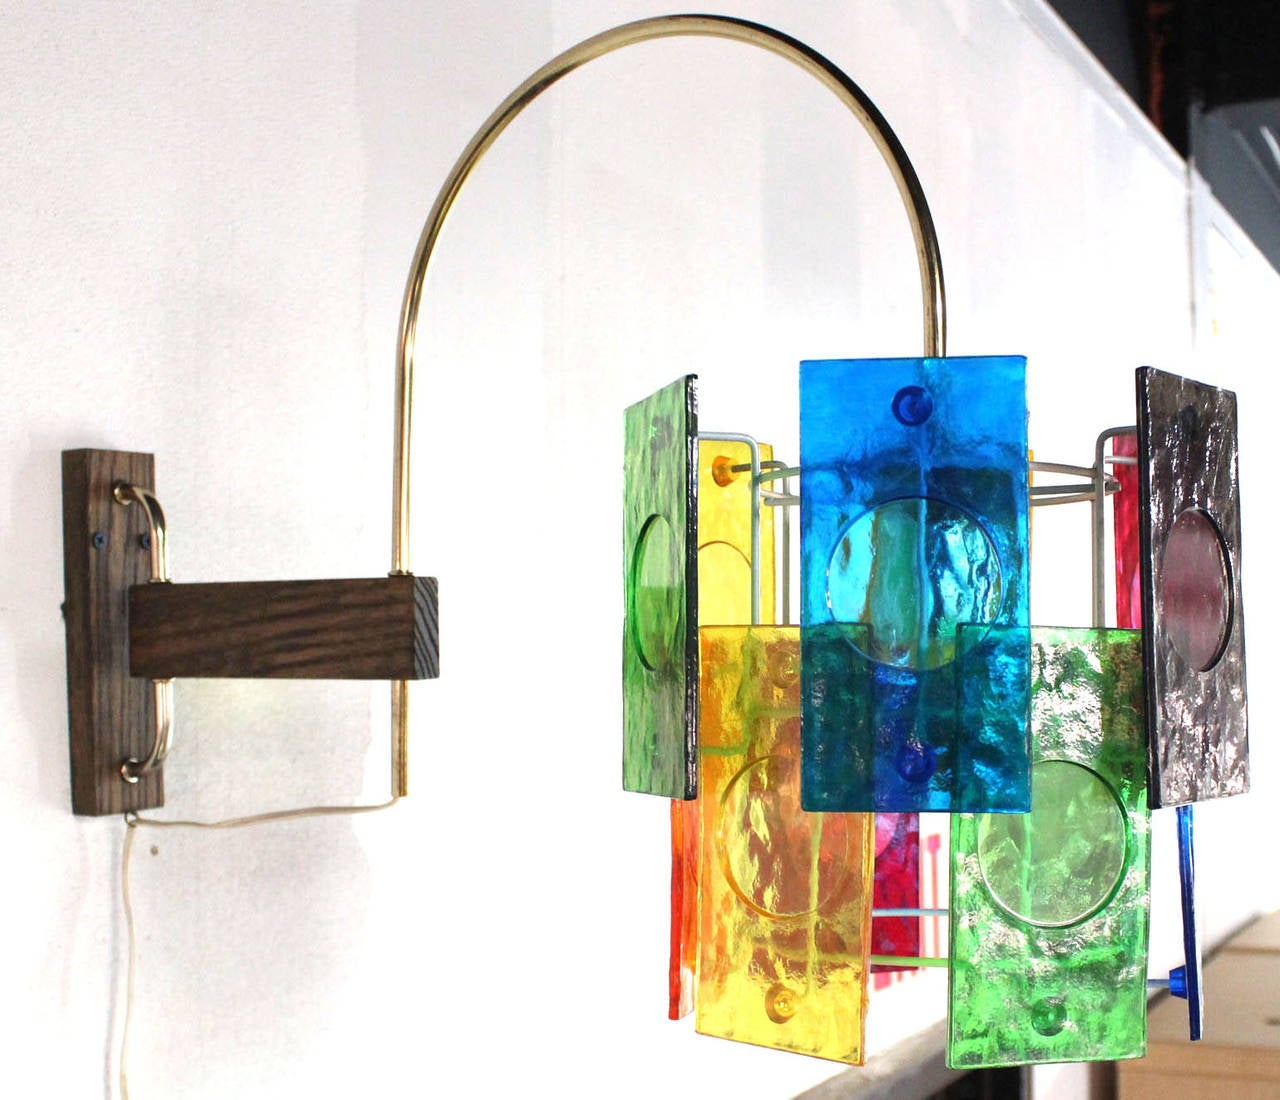 Mid Century Modern Colorful Swivel Wall Sconce Light ... on Mid Century Modern Sconces id=32358